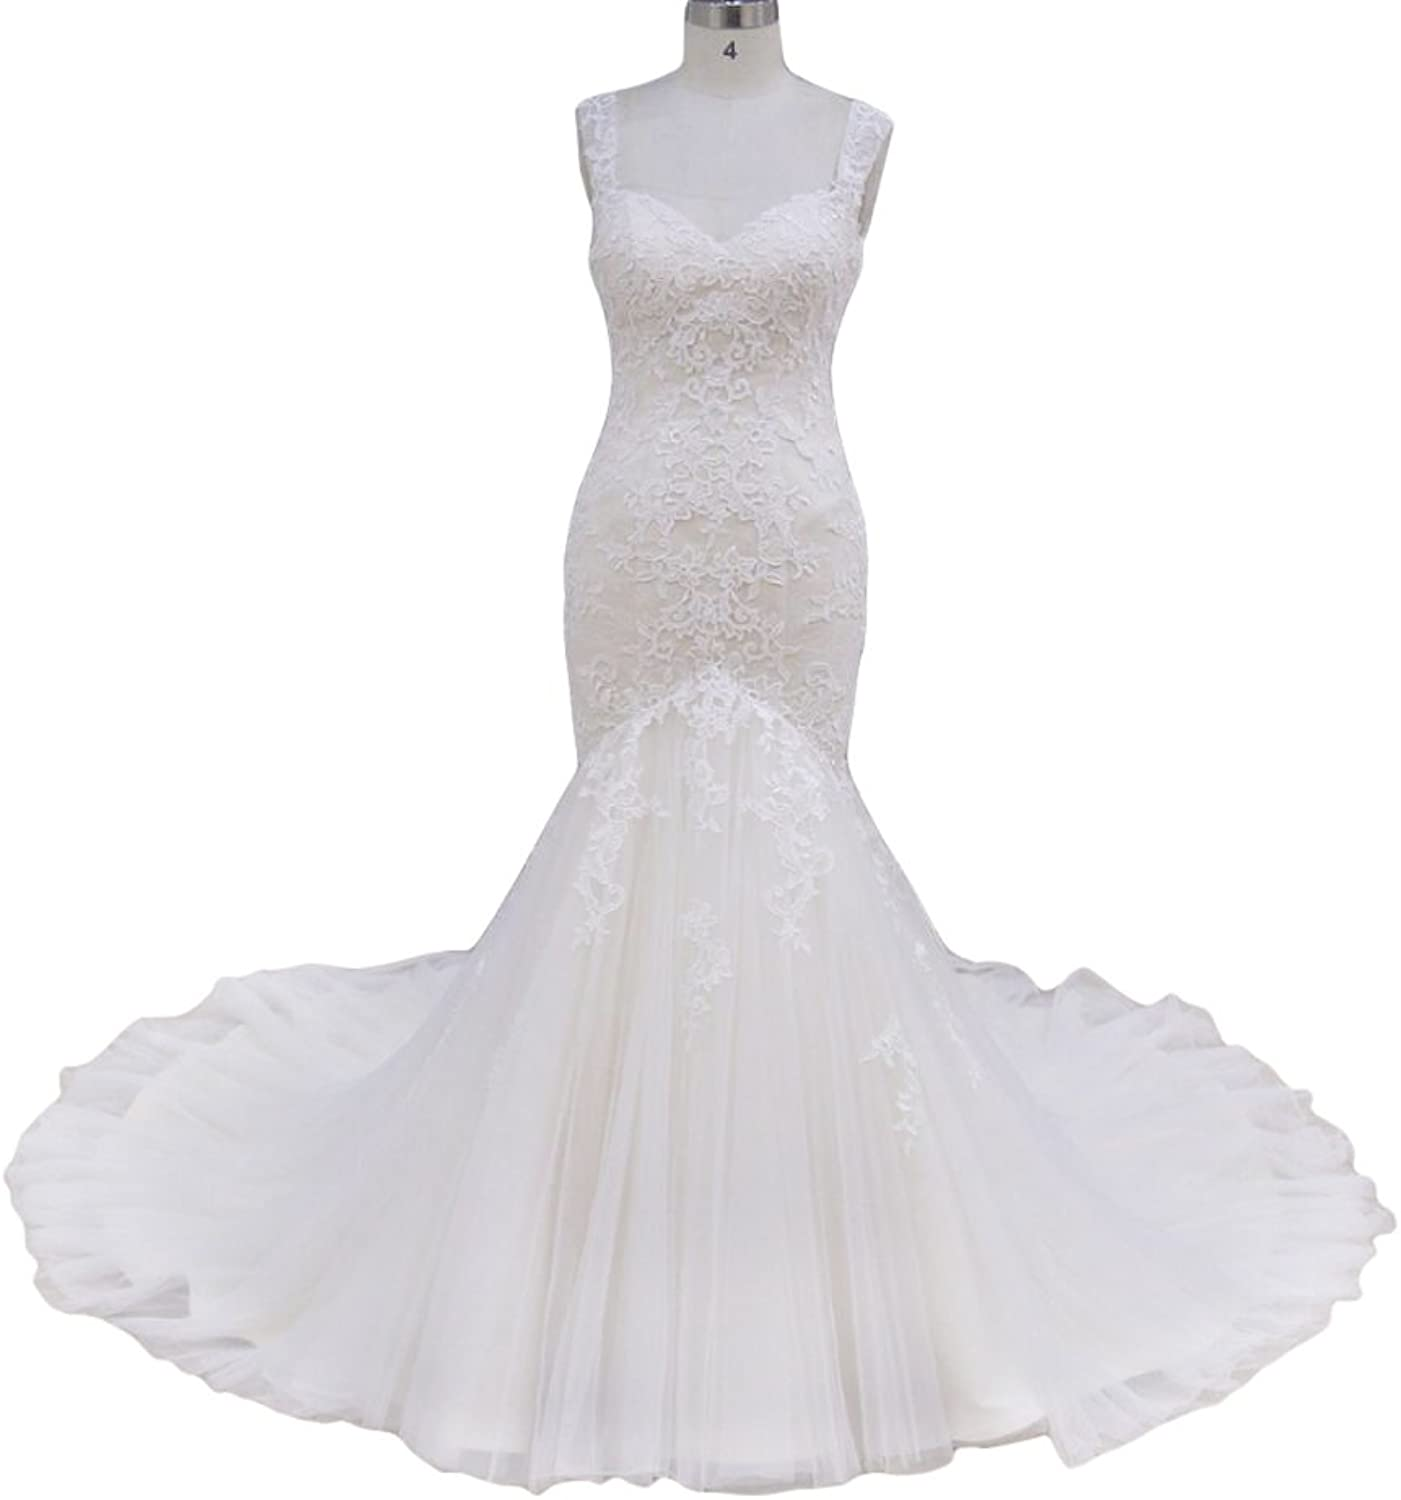 Special Bridal Glamgoldus Lace Appliqued Tulle Mermaid Wedding Dress